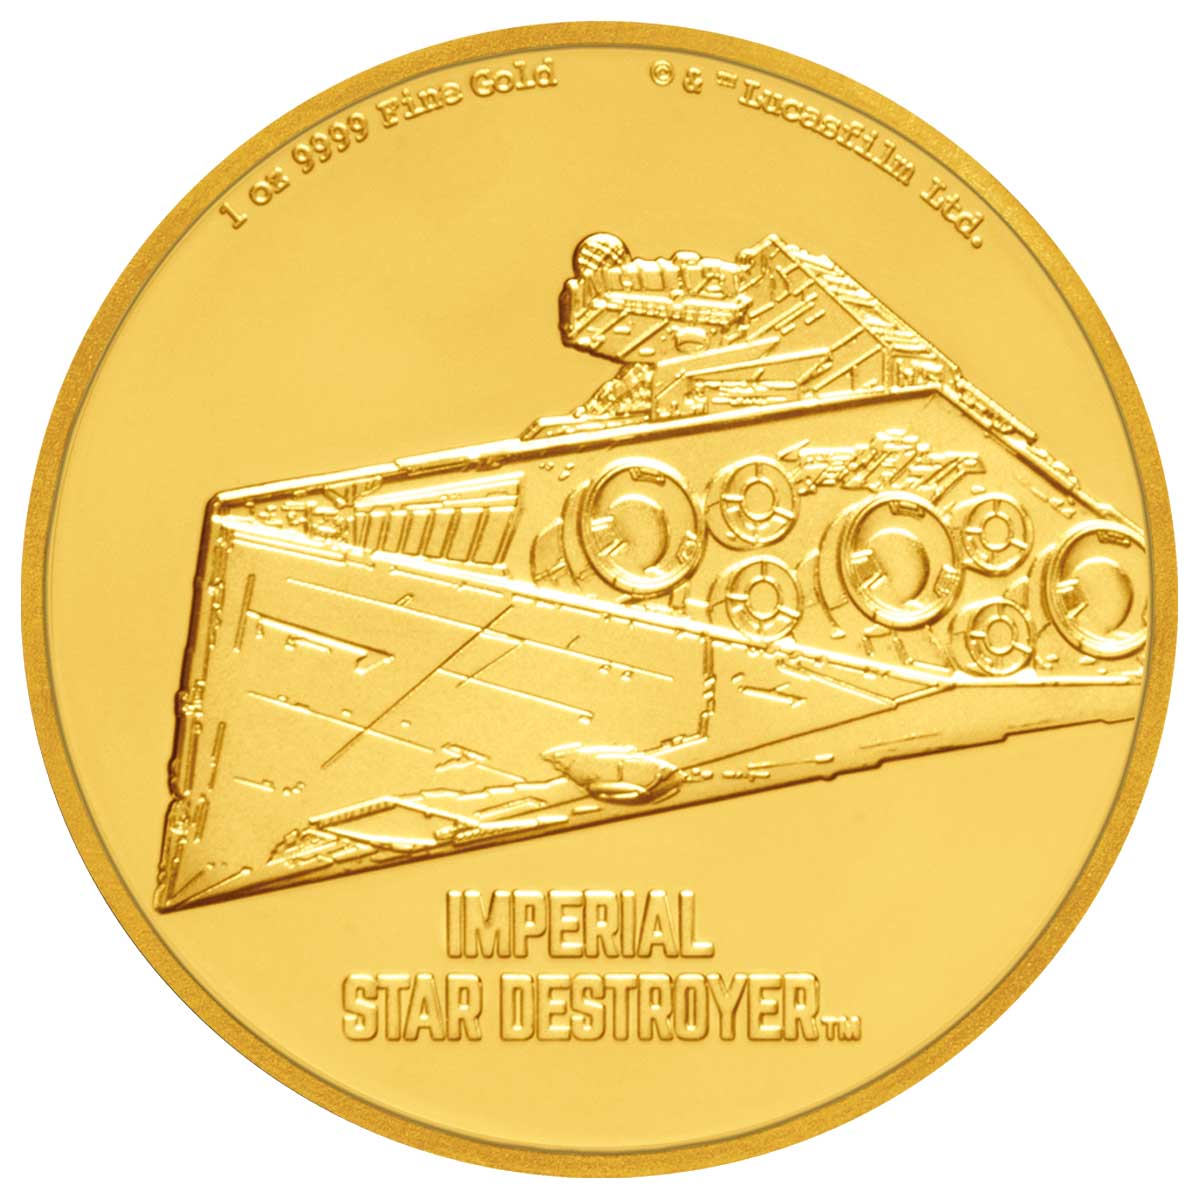 2017 Star Wars Ships Imperial Star Destroyer 1oz Silver Coin